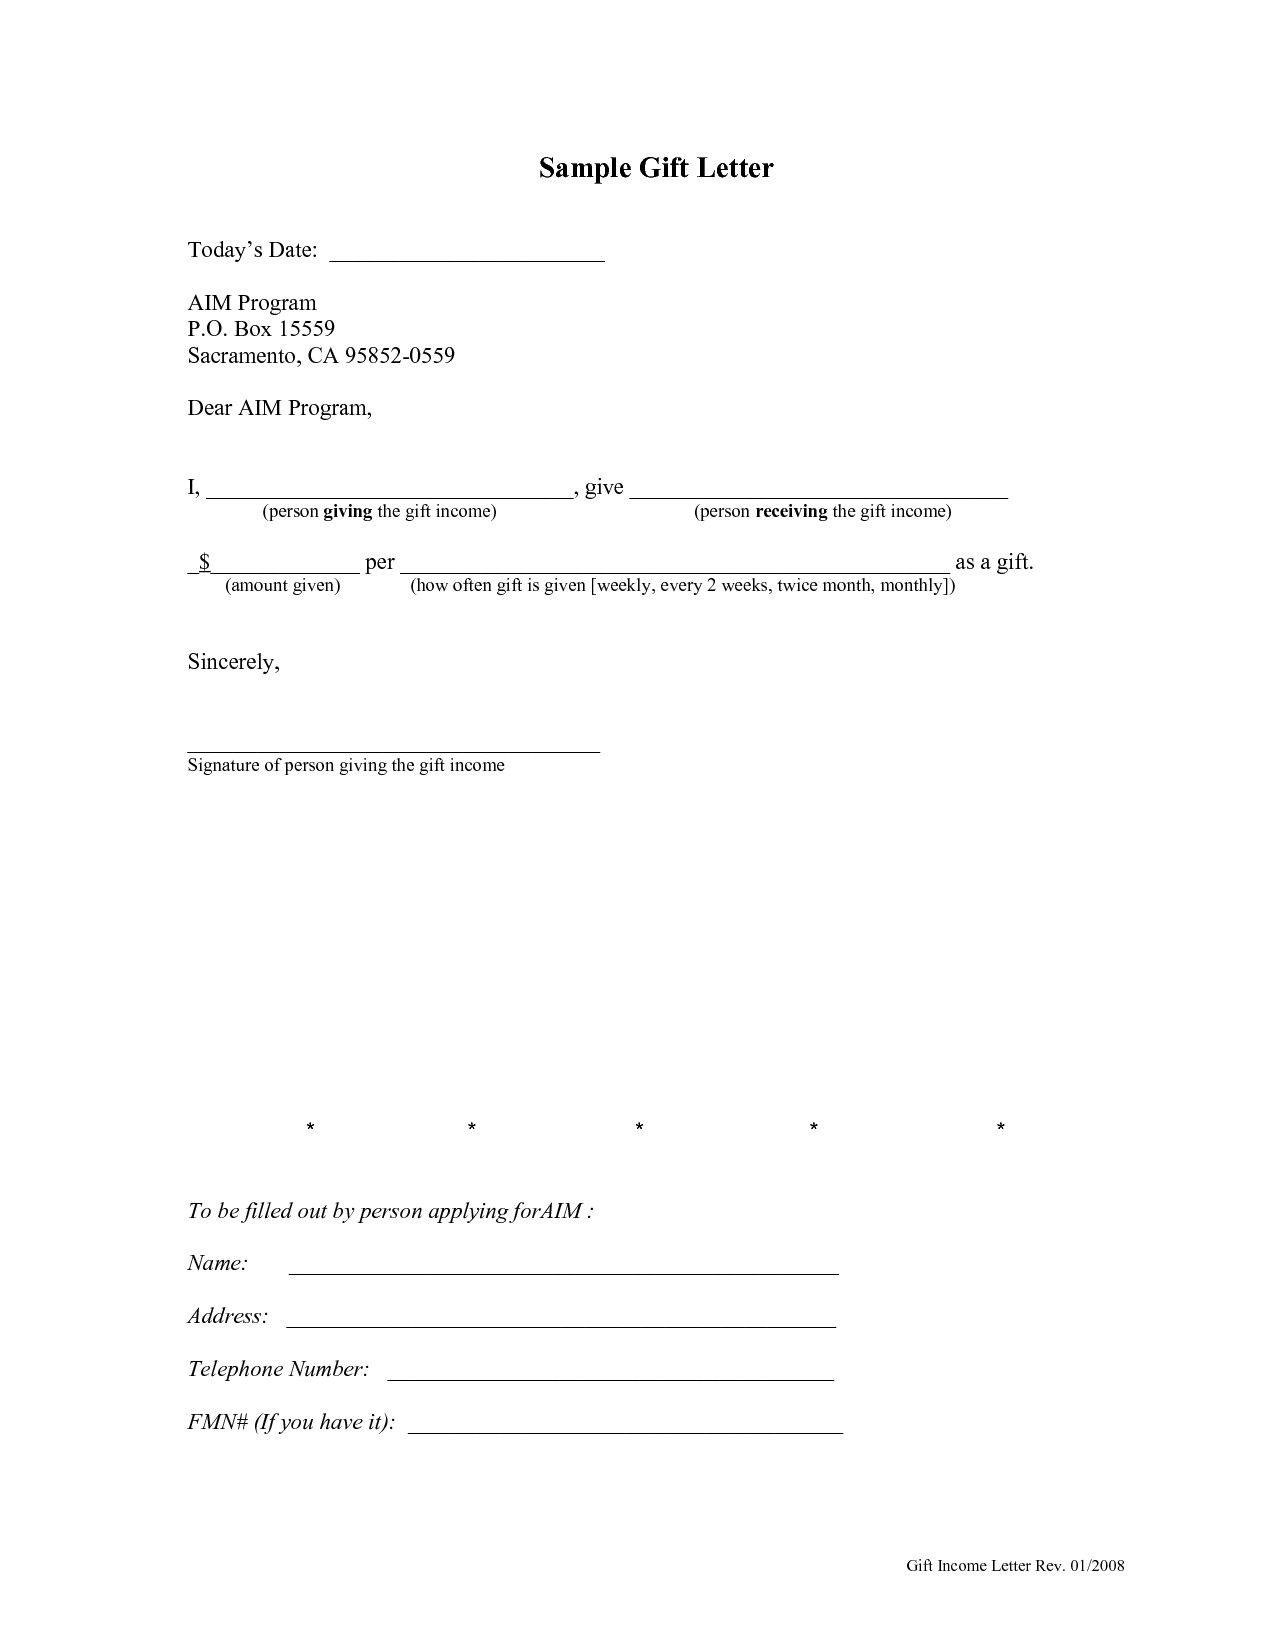 Fha Gift Letter Template - Gift Letter Template for Mortgage Down Payment Uk Sample Gift